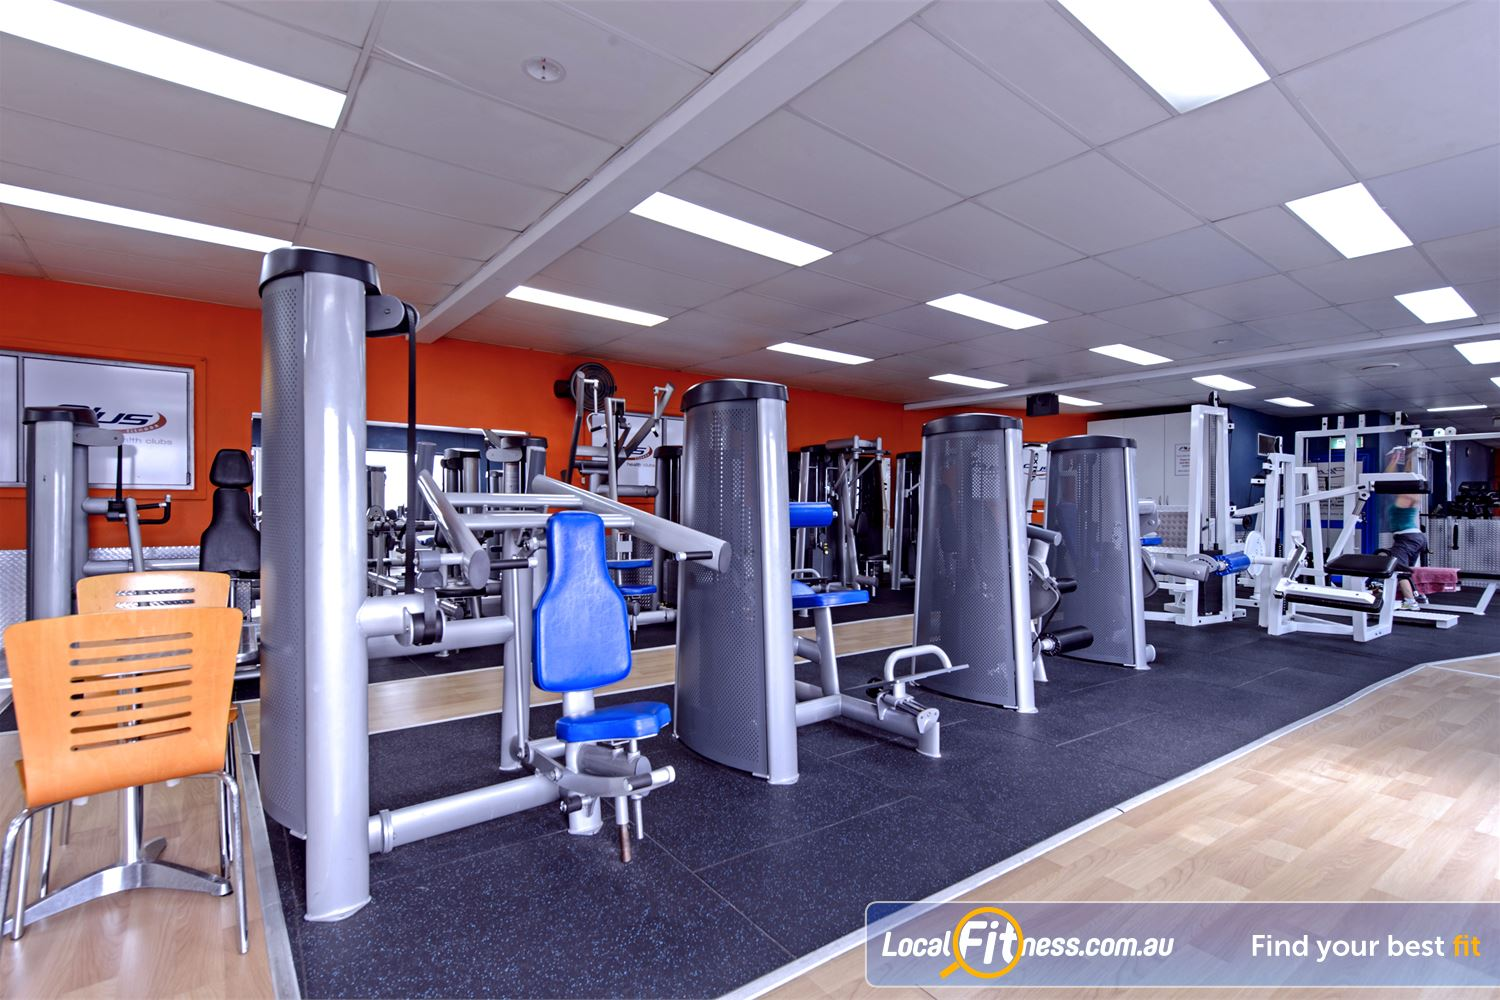 Plus Fitness Health Clubs Near Baulkham Hills Our Northmead gym includes pin-loading machines for every muscle group.